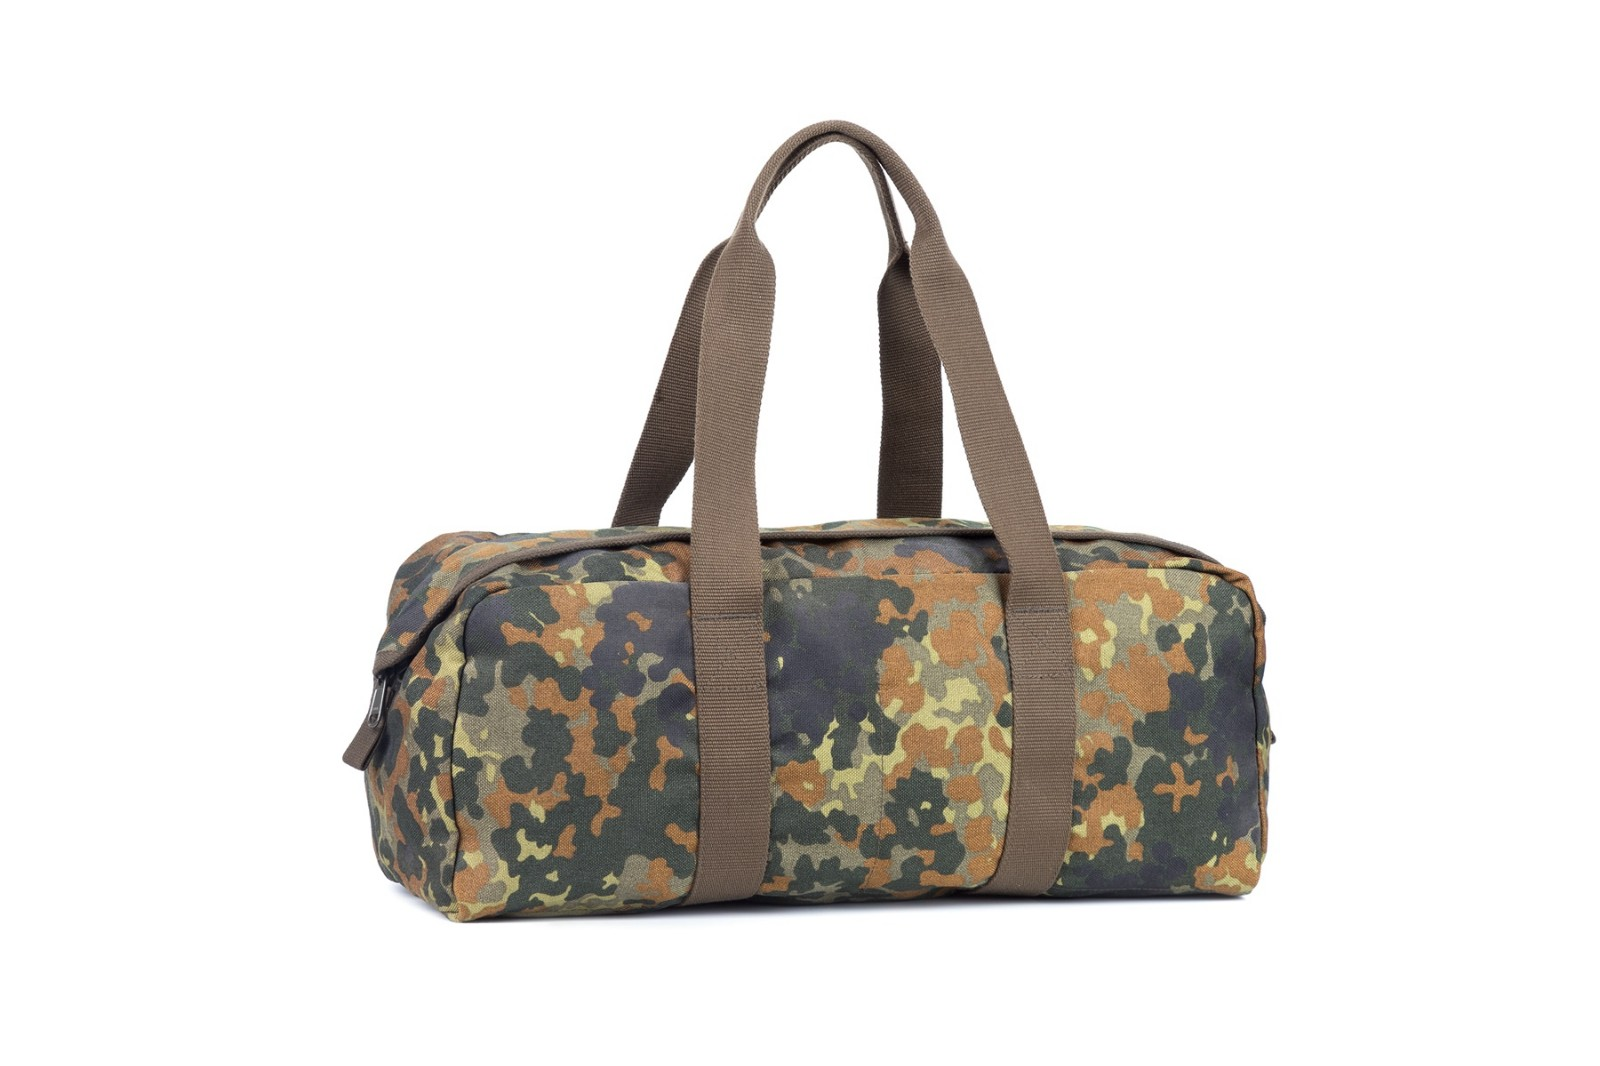 GF bags-Manufacturer Of Military Gear Bags, Military Tactical Bag On GF Bags-5